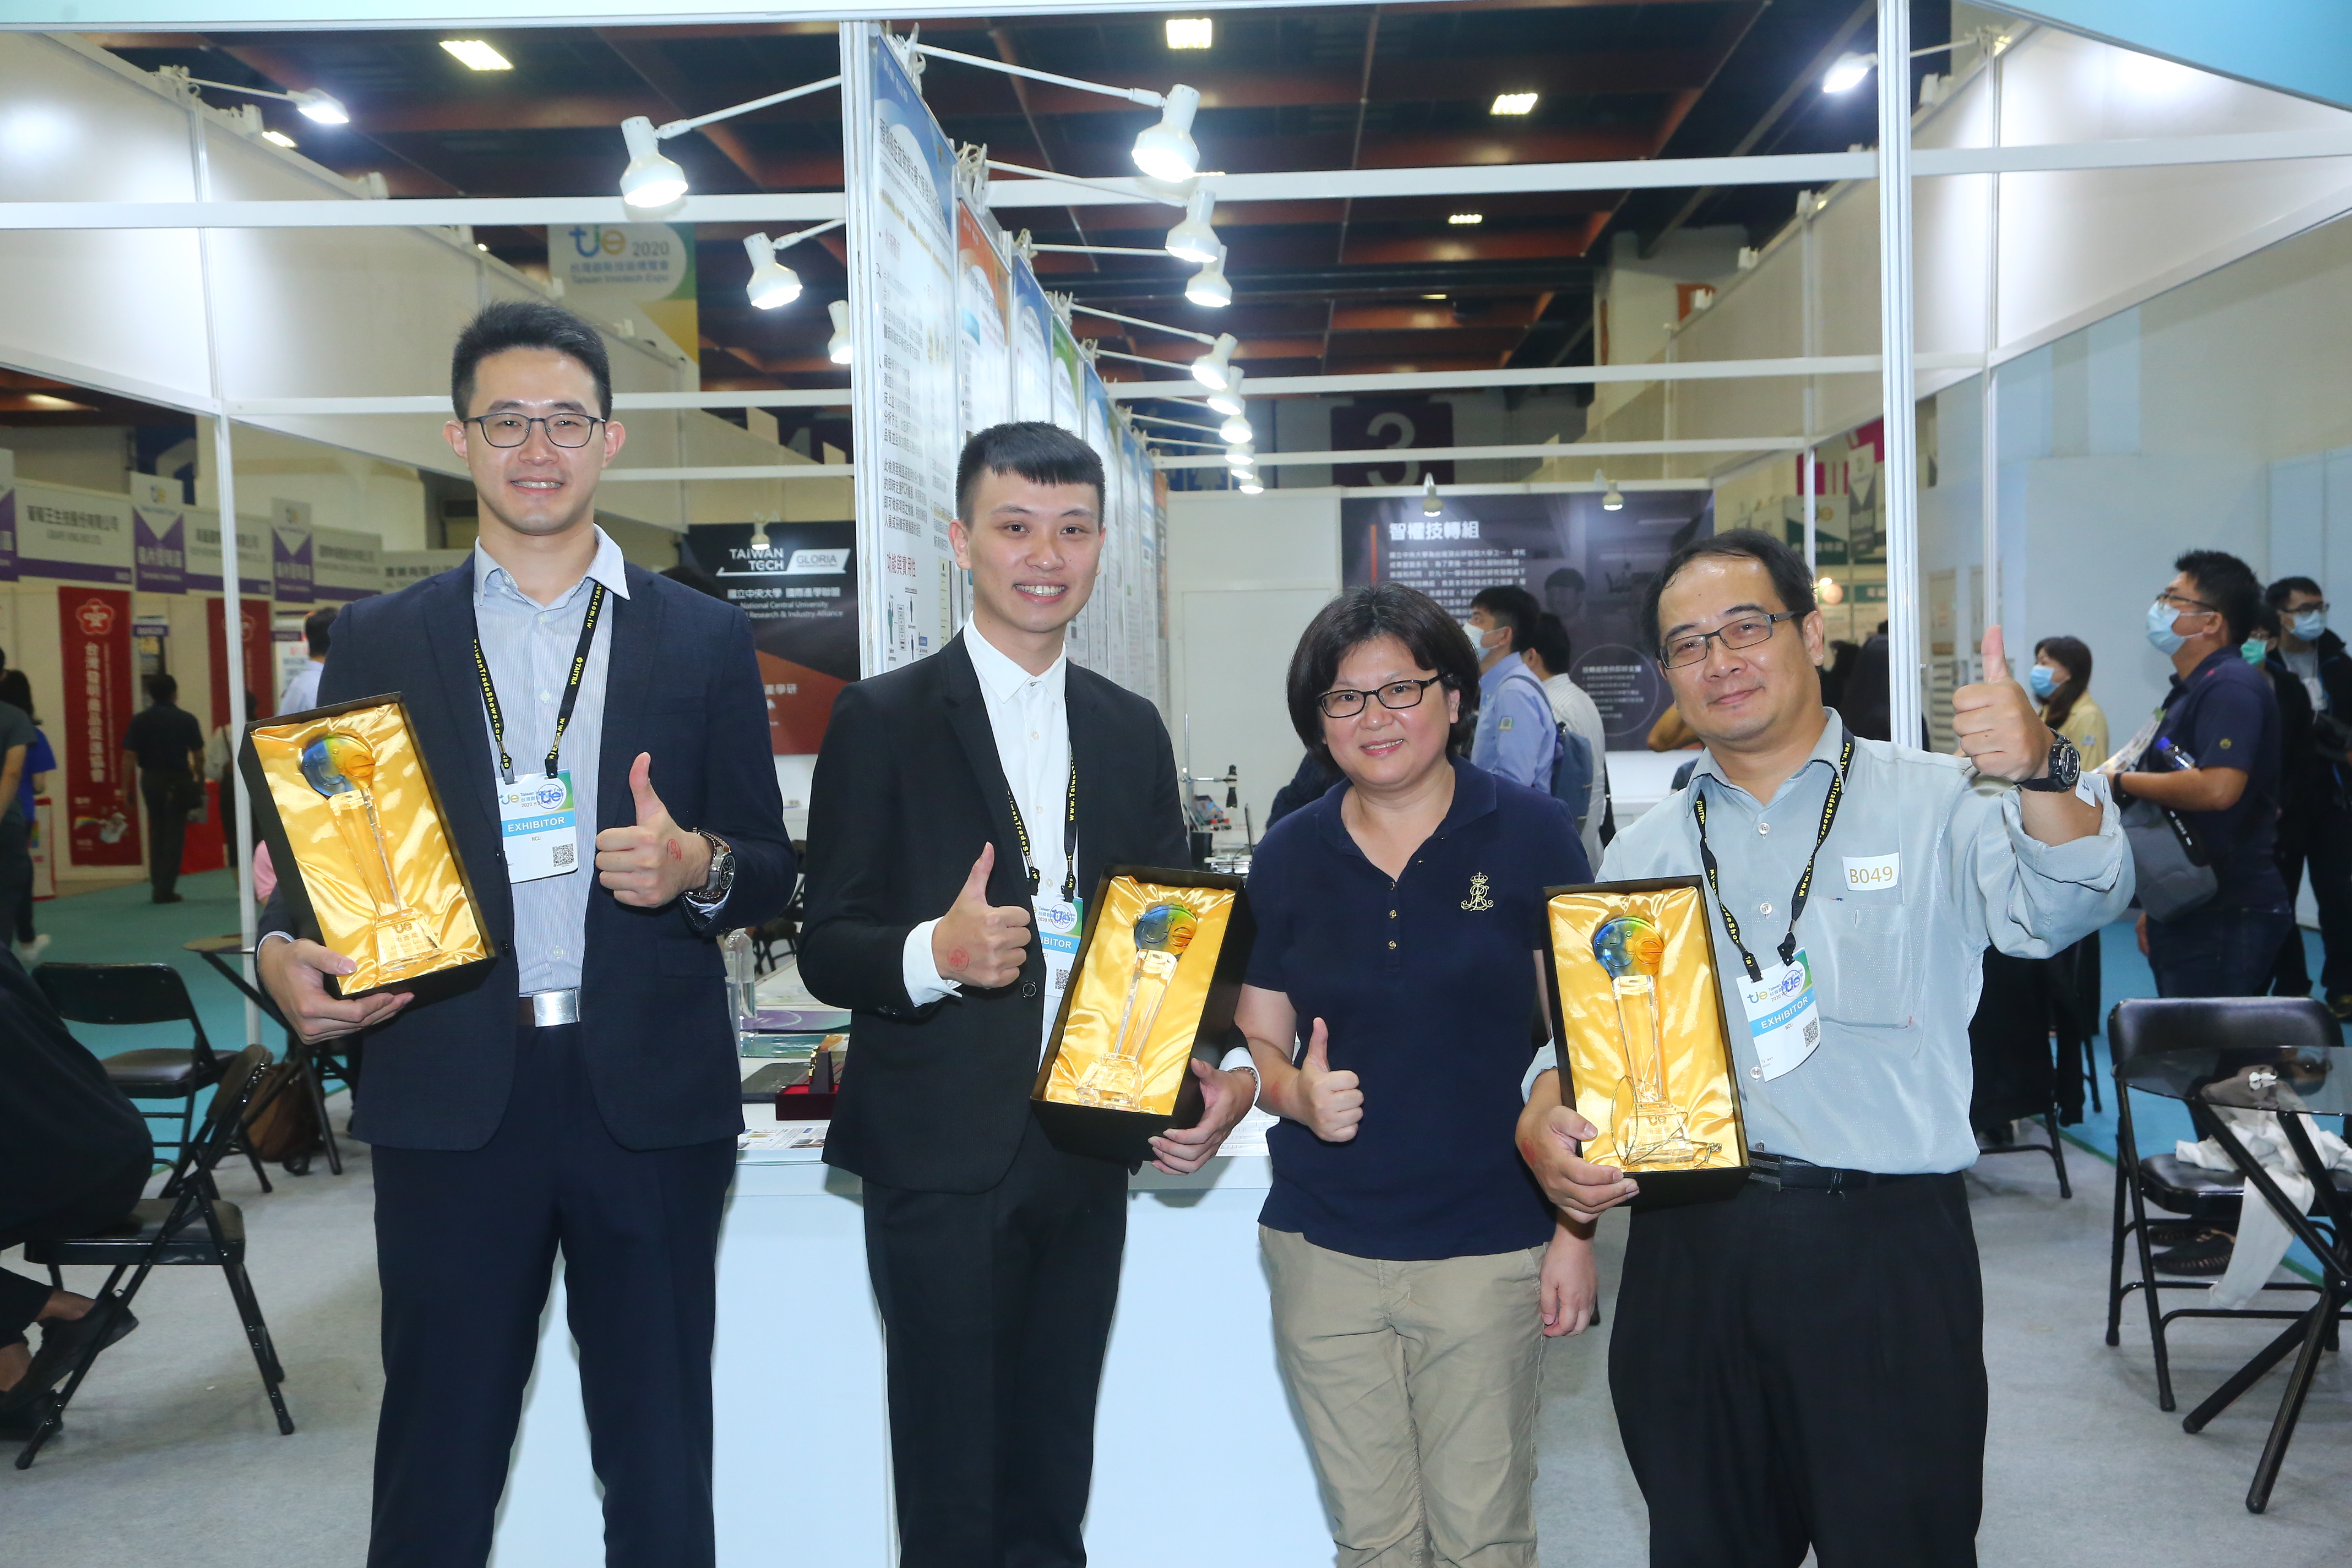 https://storage.googleapis.com/www.taiwantradeshow.com.tw/activity-photo/202009/T-50834220-name.jpg